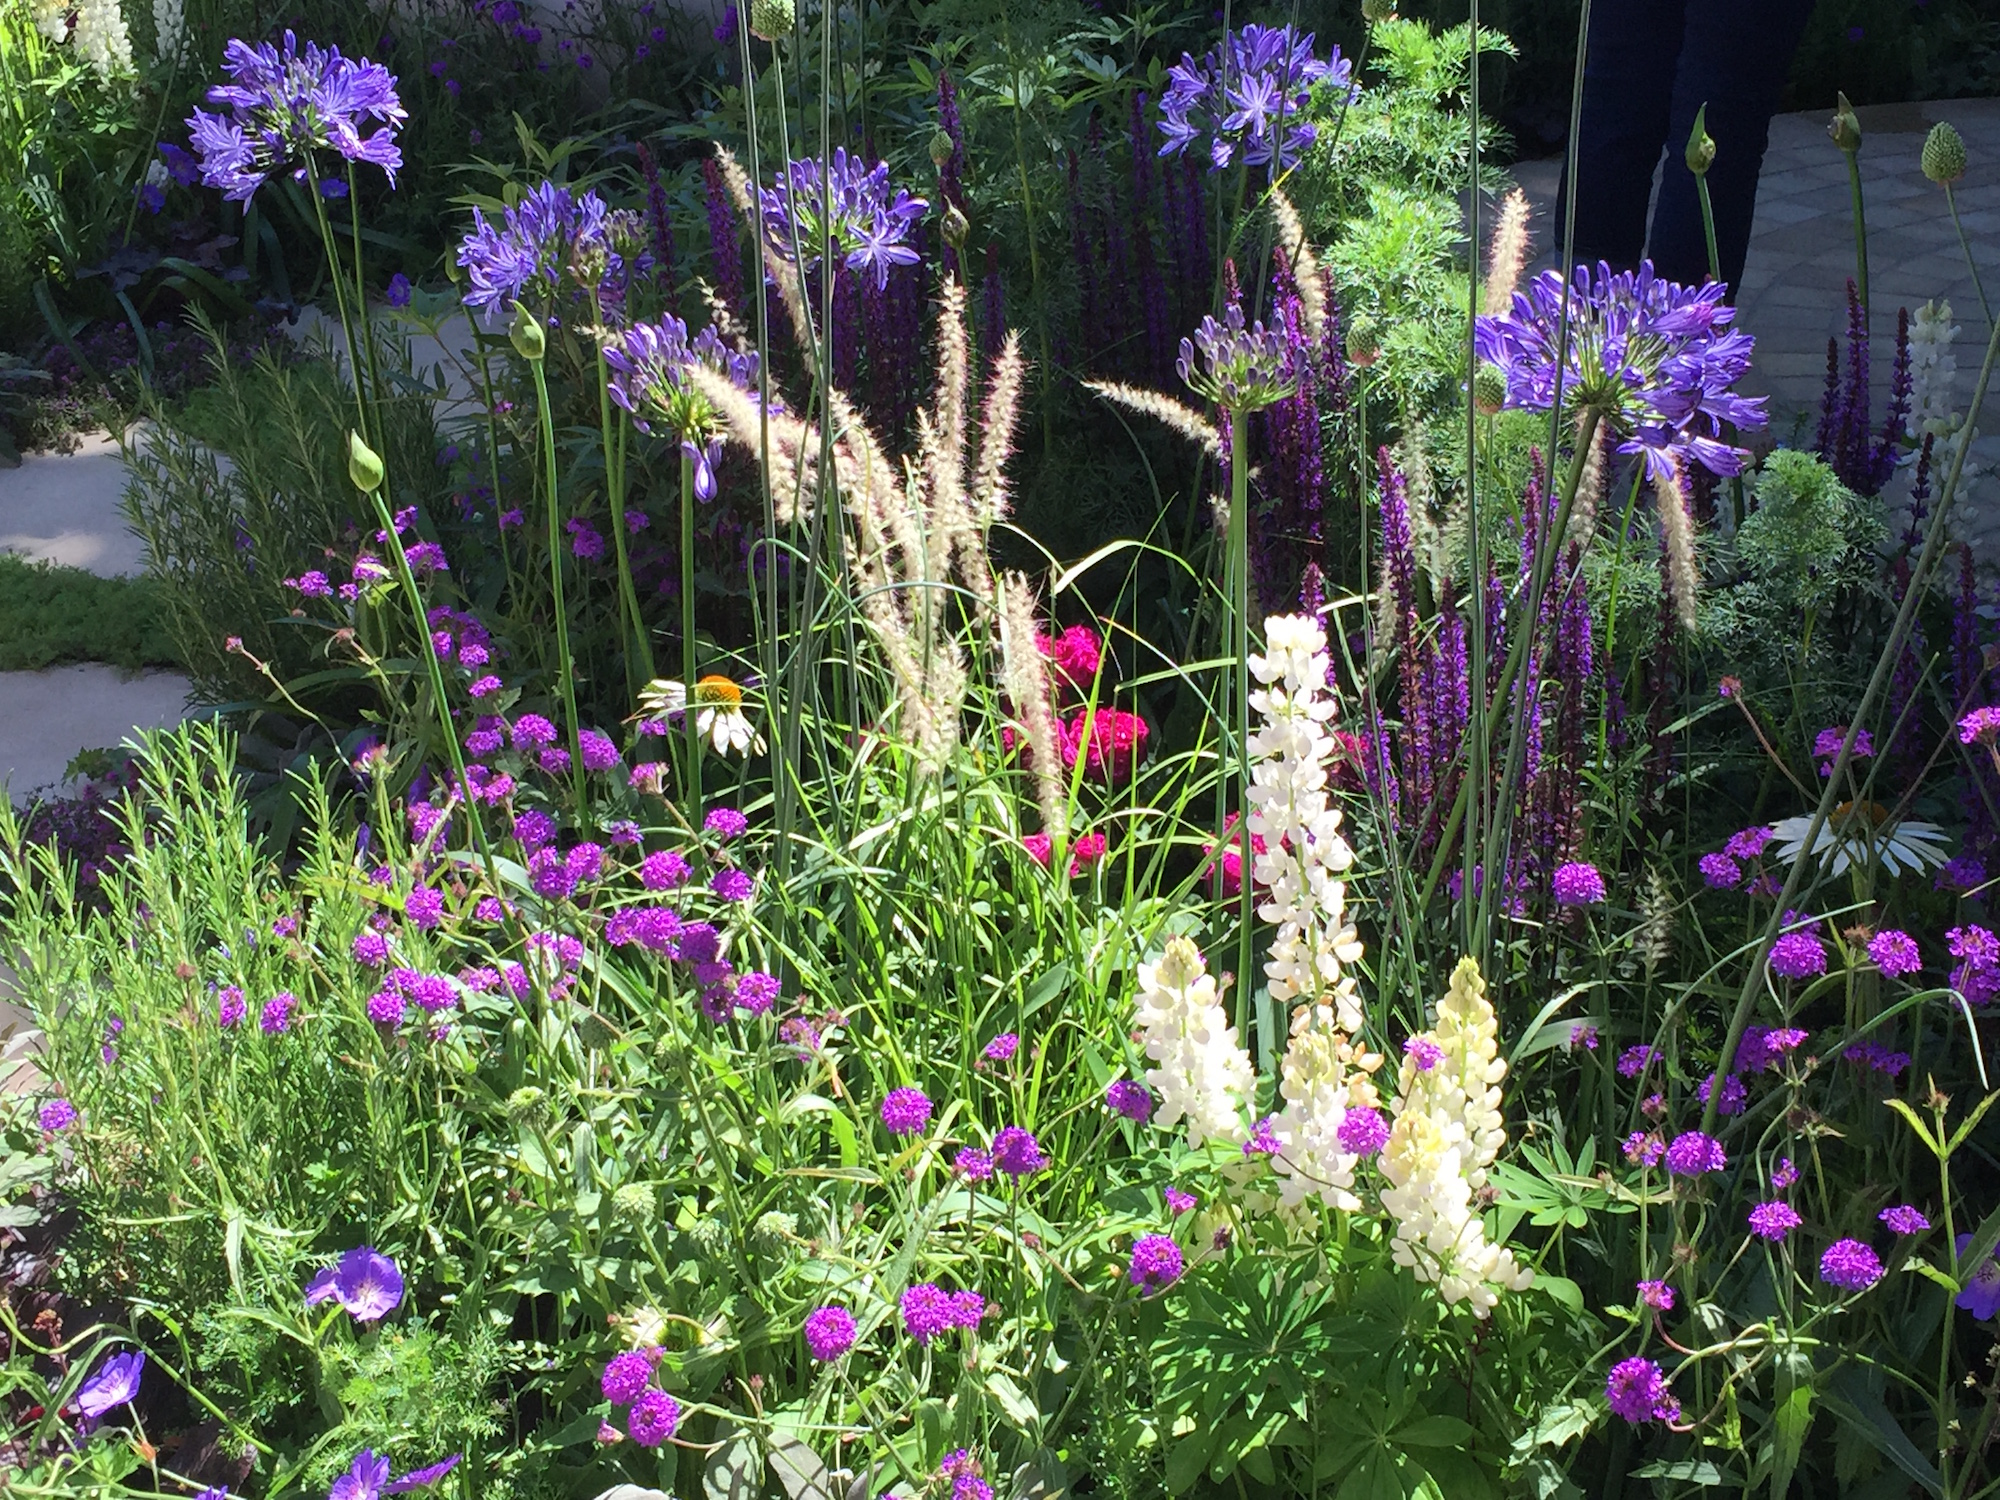 Rhs flower shows 2018 with sisley garden tours - Hampton court flower show ...